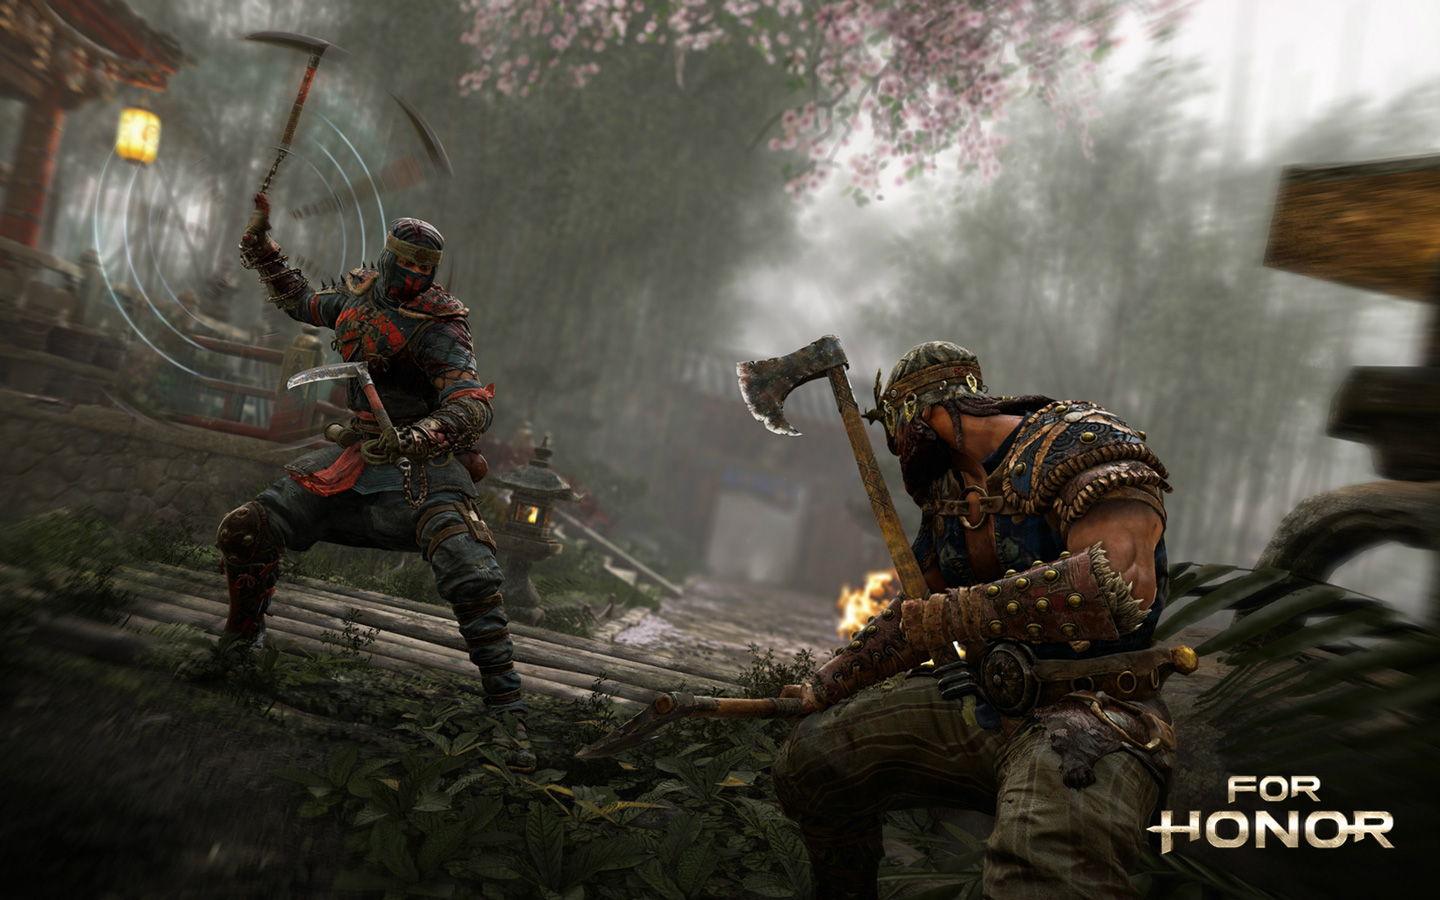 Free For Honor Wallpaper in 1440x900